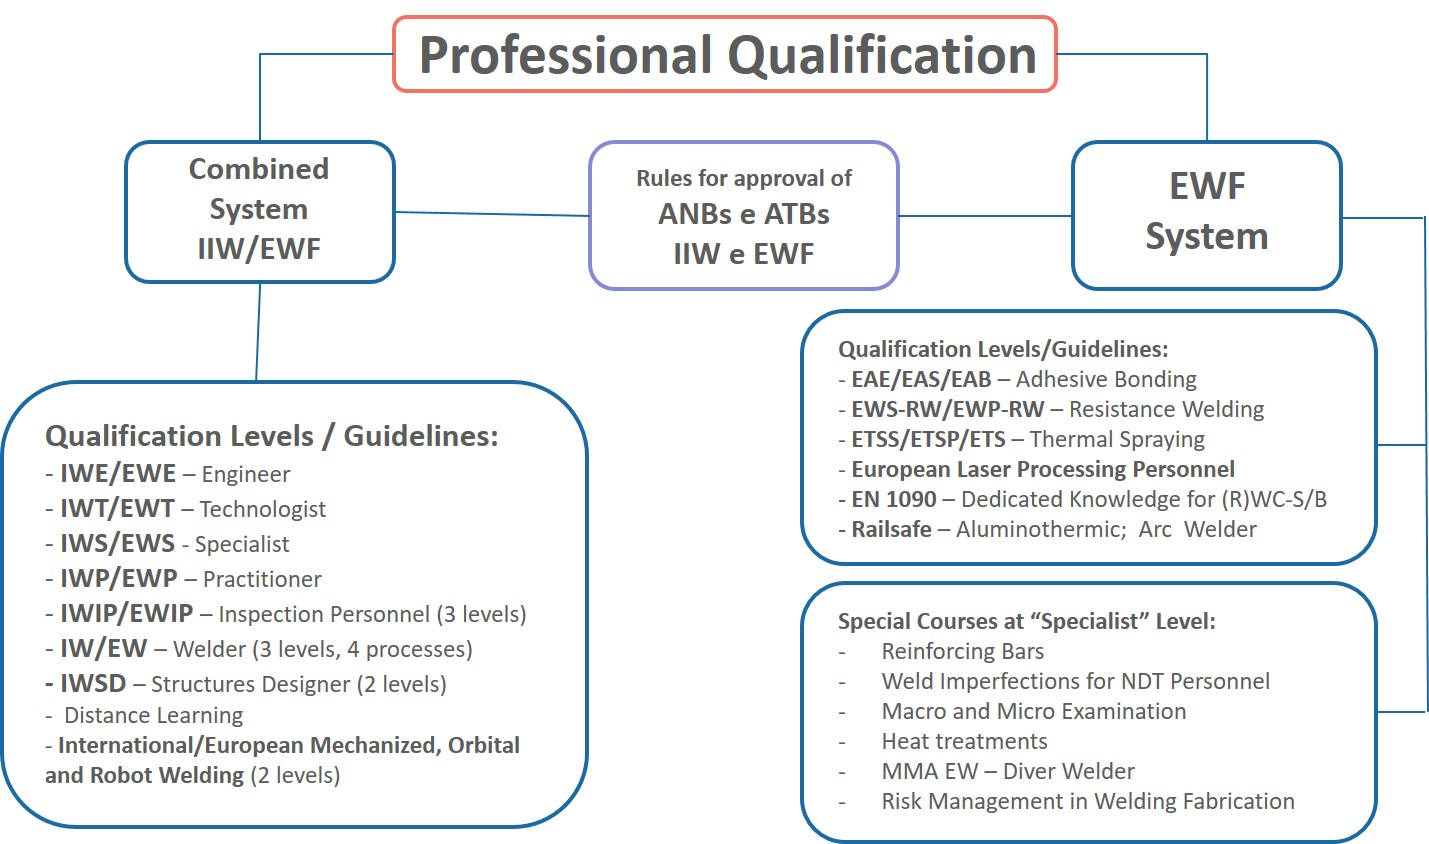 How EWF's qualification system addresses the challenges of Industry 4.0